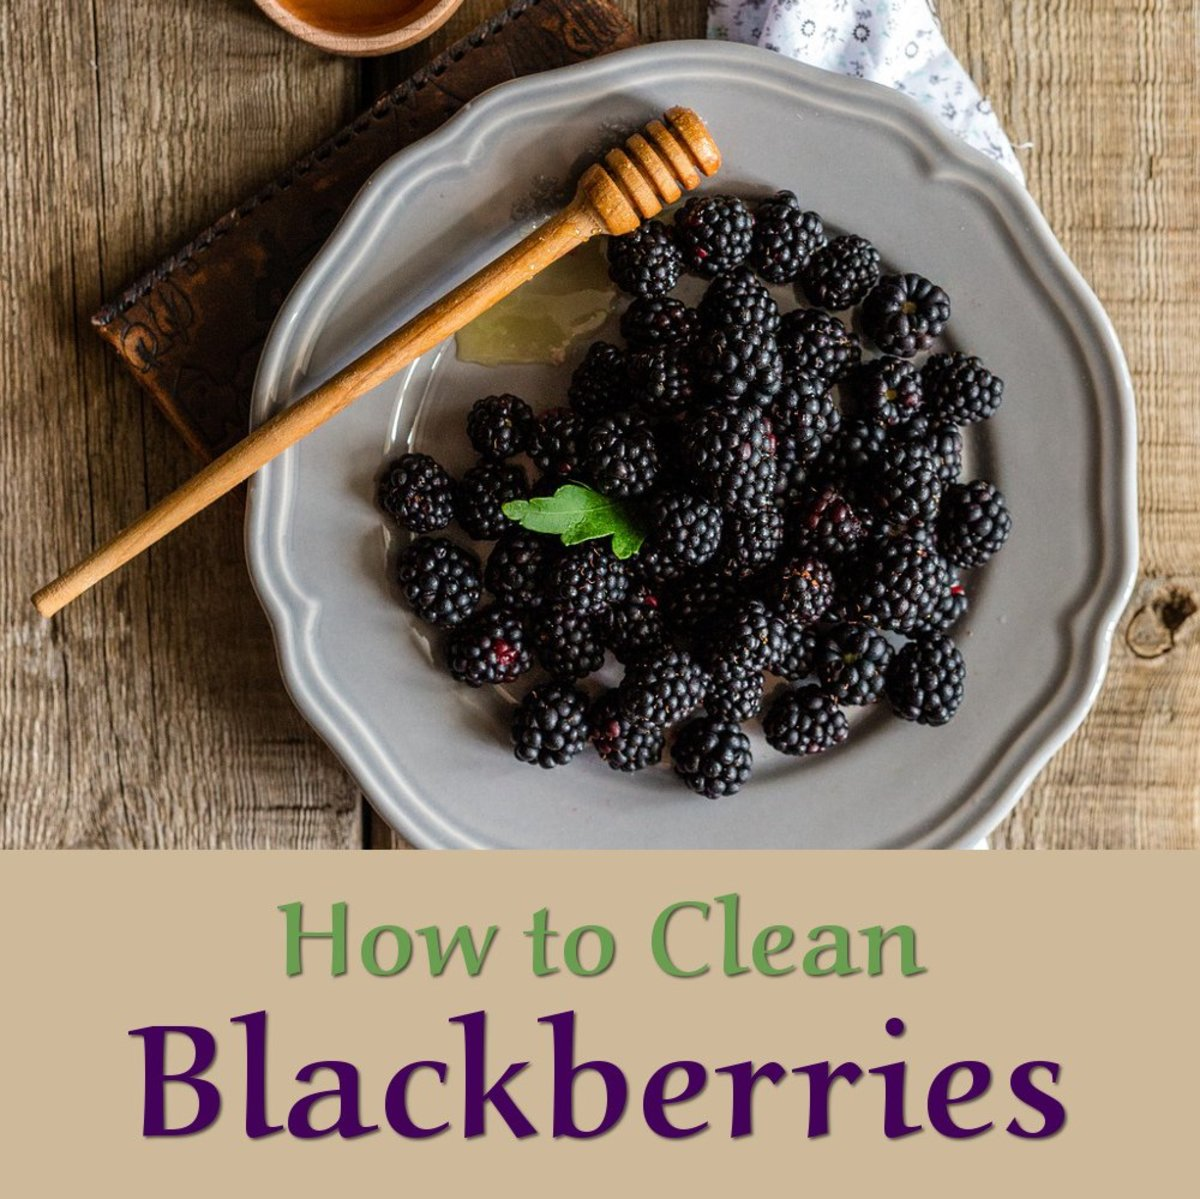 How to Wash and Clean Blackberries After Picking